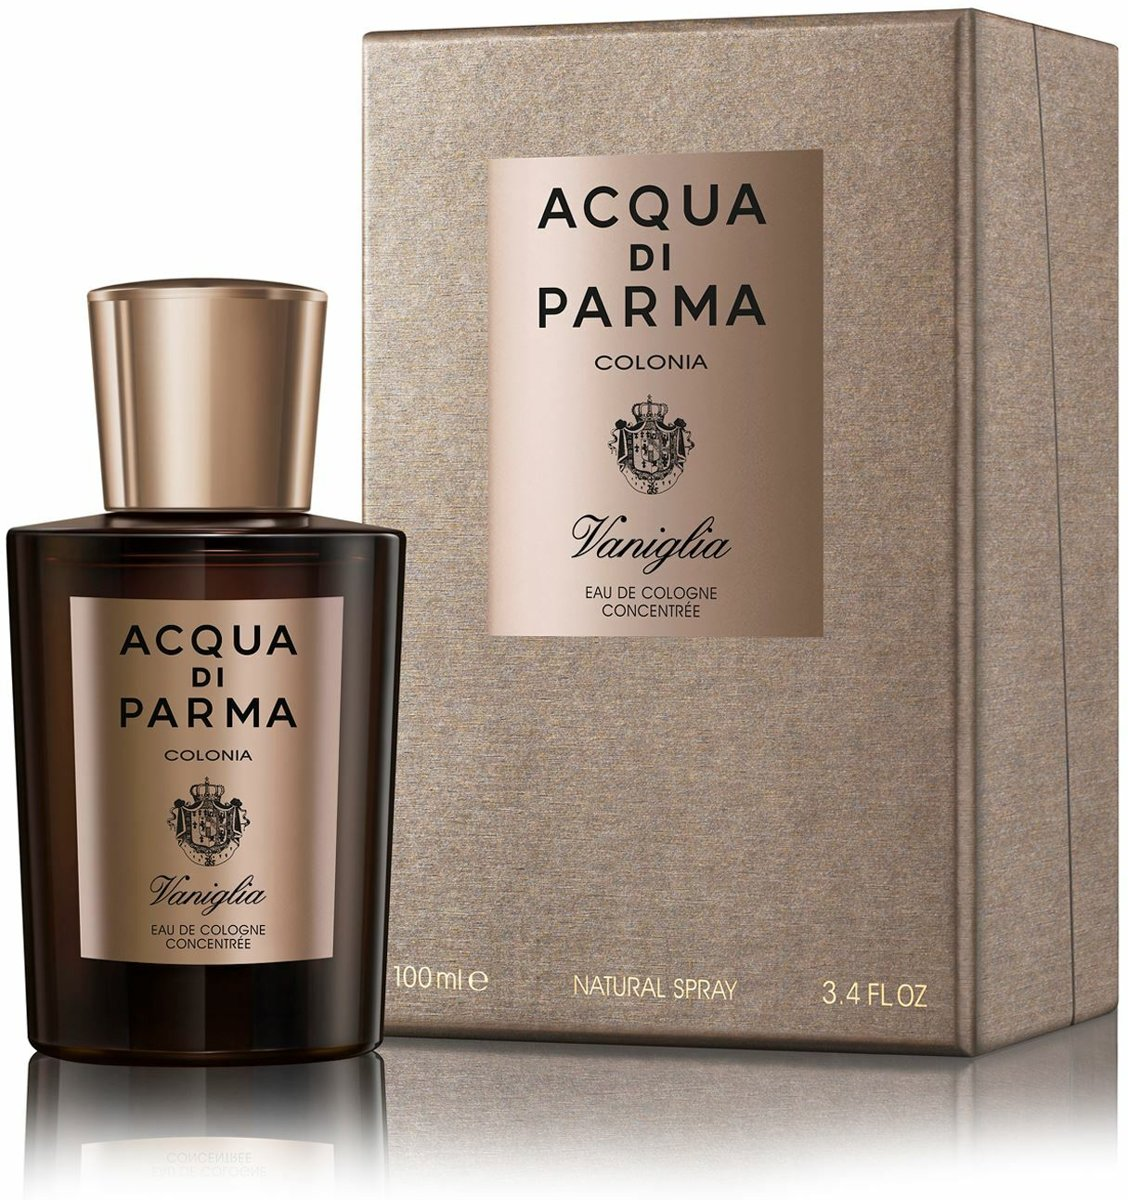 Acqua Di Parma Colonia Vaniglia 100 ml Eau De Cologne Concentree Voor Heren